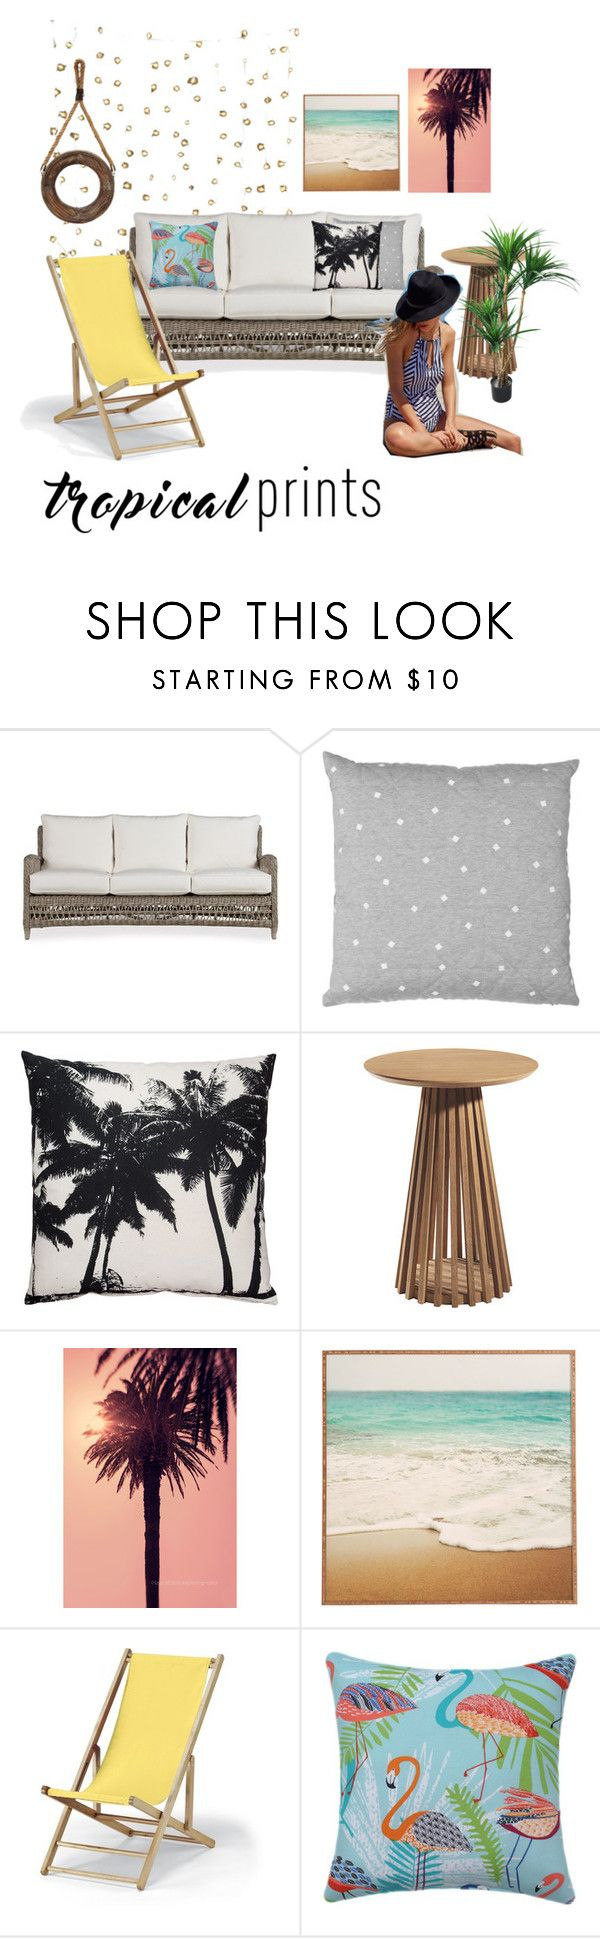 """Tropical Prints"" by dindydind ❤ liked on Polyvore featuring interior, interiors, interior design, home, home decor, interior decorating, Telescope Casual, TradeMark and tropicalprints"